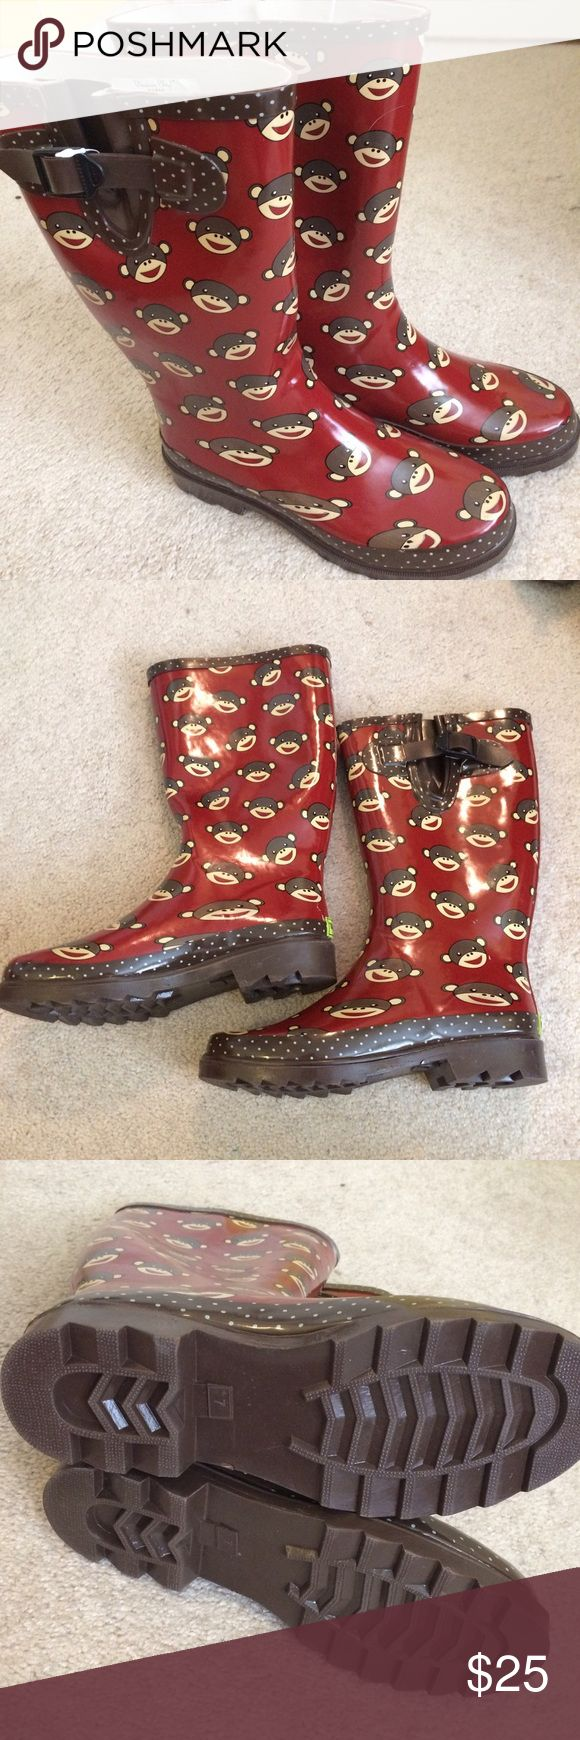 Western Chief Rain Boots Sock Monkey NWOT. Size 7 Adorable dark red Sock Monkey rain boots. Brand new, never worn. Thick, heavy duty boots. Good quality. Size 7. Western Chief Shoes Winter & Rain Boots